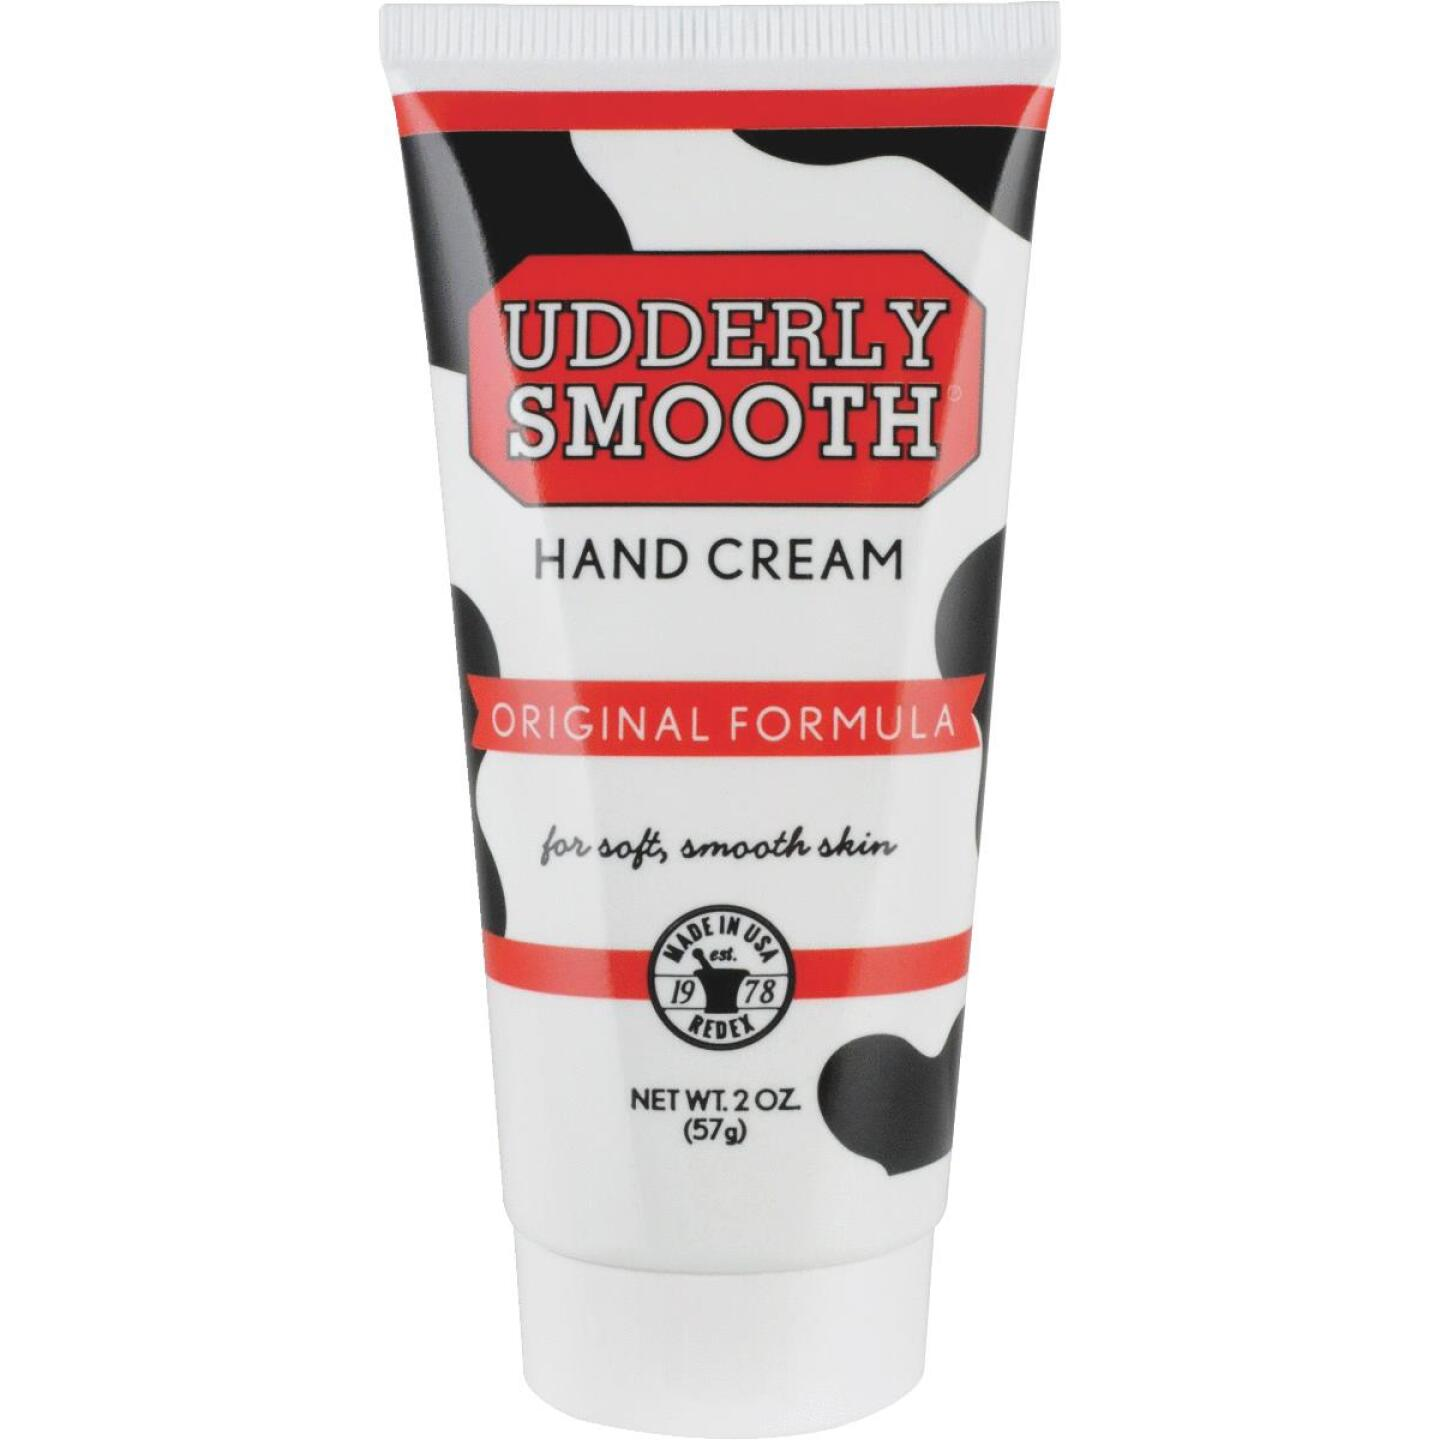 Udderly Smooth 2 Oz. Tube Udder Cream Lotion Image 1